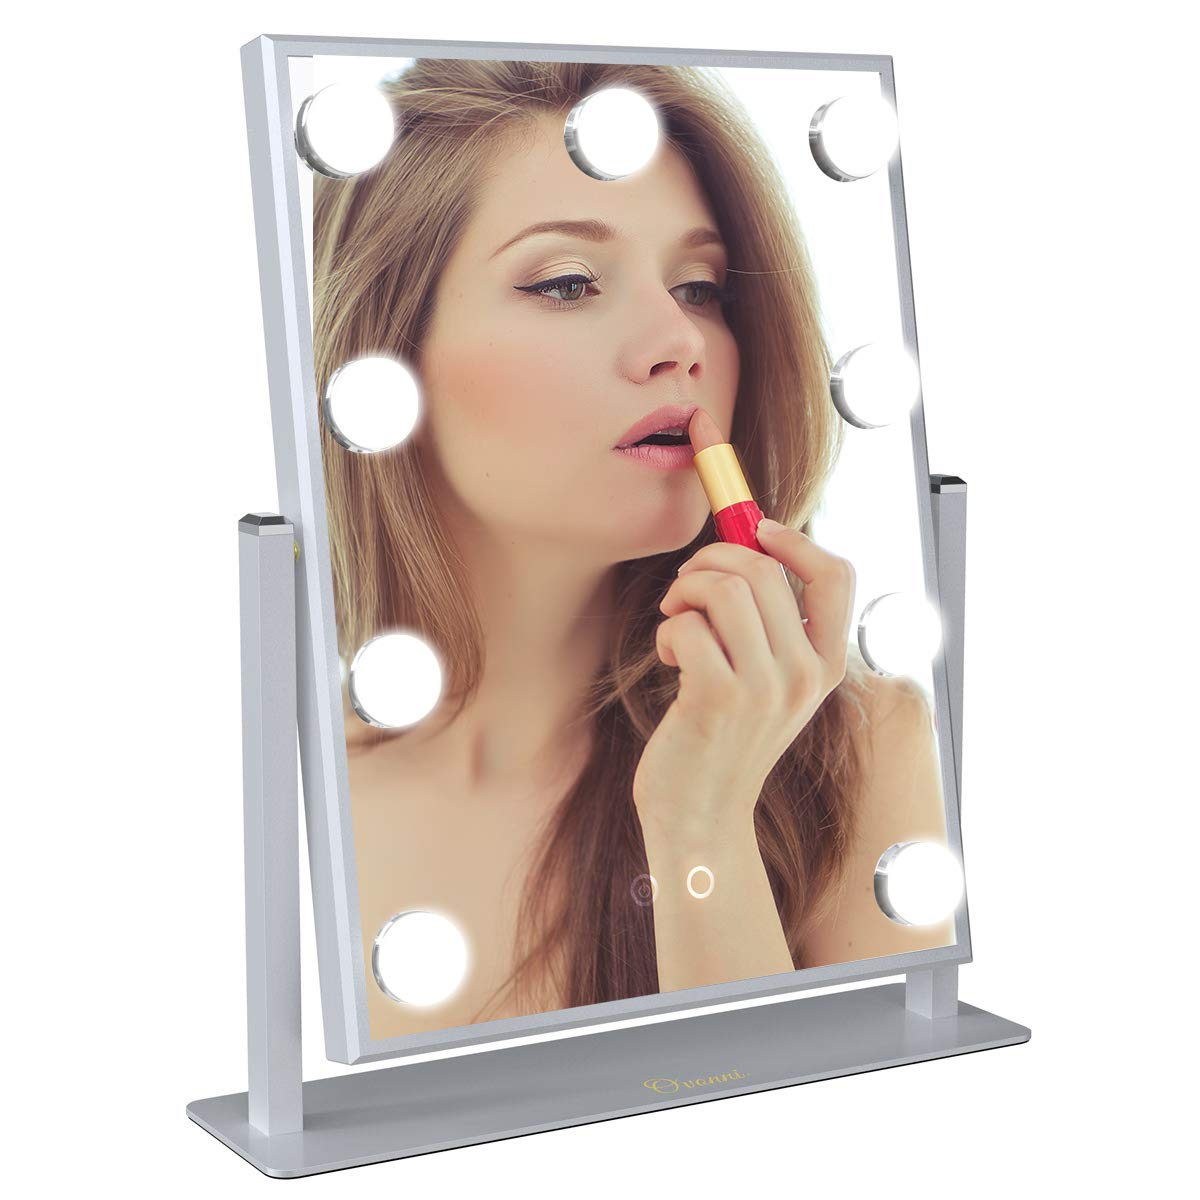 Ovonni Vanity Hollywood Makeup Mirror with 9 LED Lights, 2 colors Dimmable Lighted Tabletop Cosmetic Mirror with Touch Control, Silver